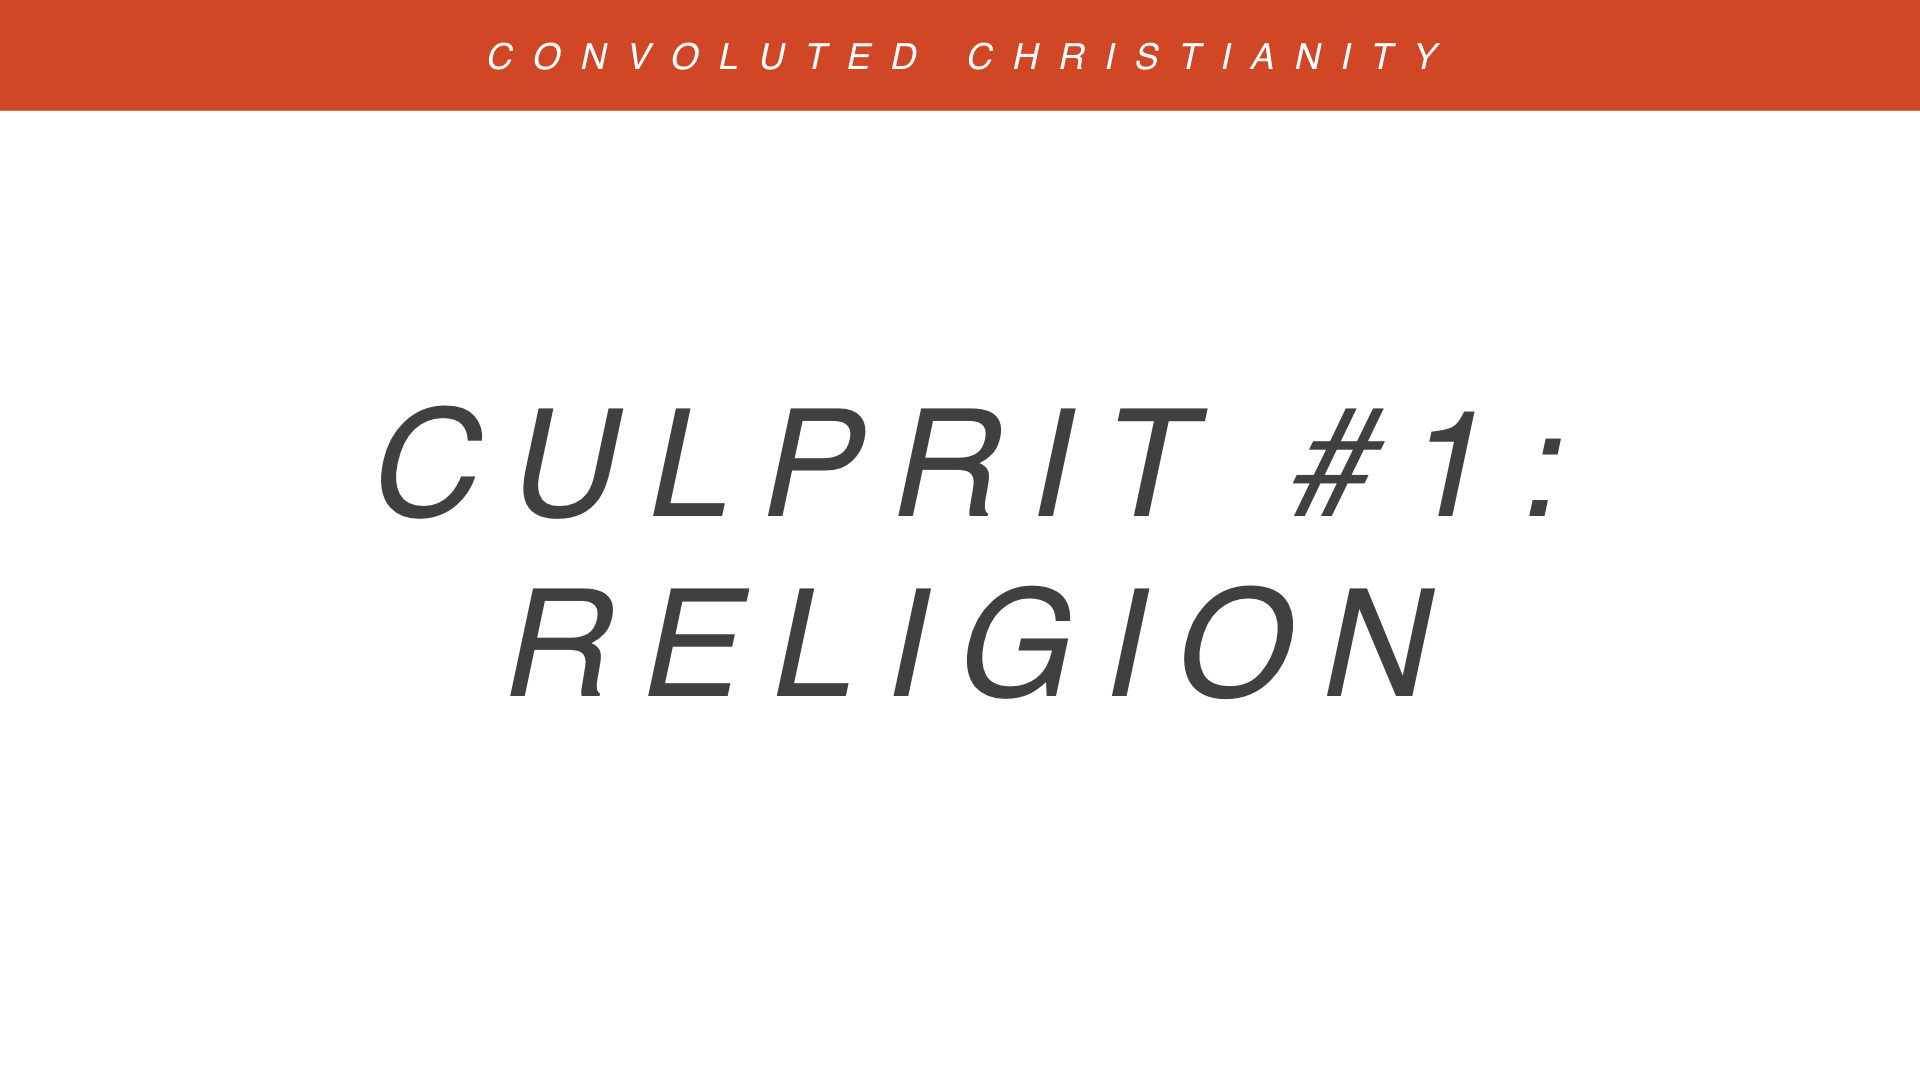 Real Christianity - Week 1 - Convoluted Christianity copy.003.jpeg